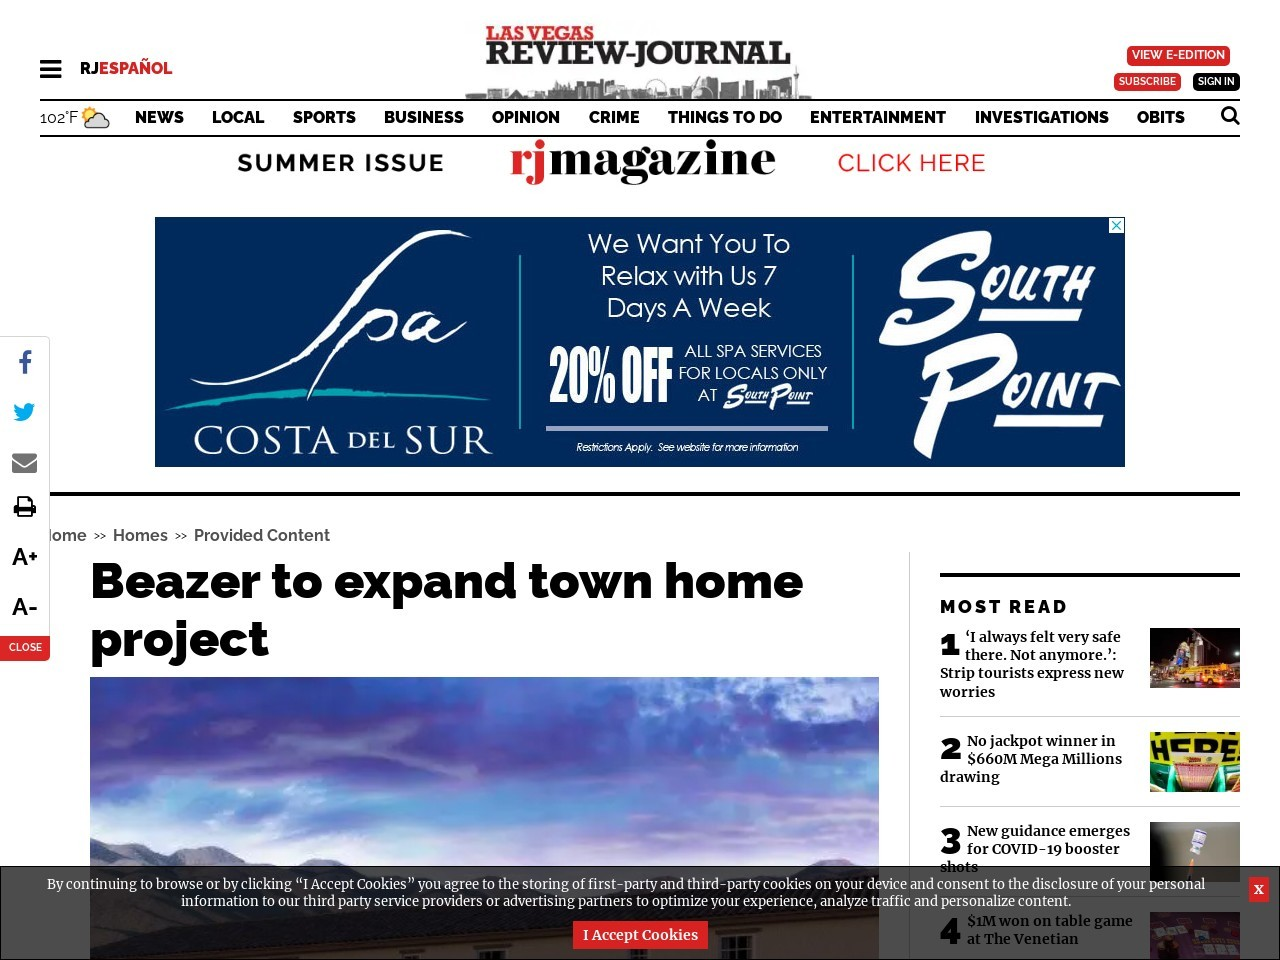 Beazer to expand town home project